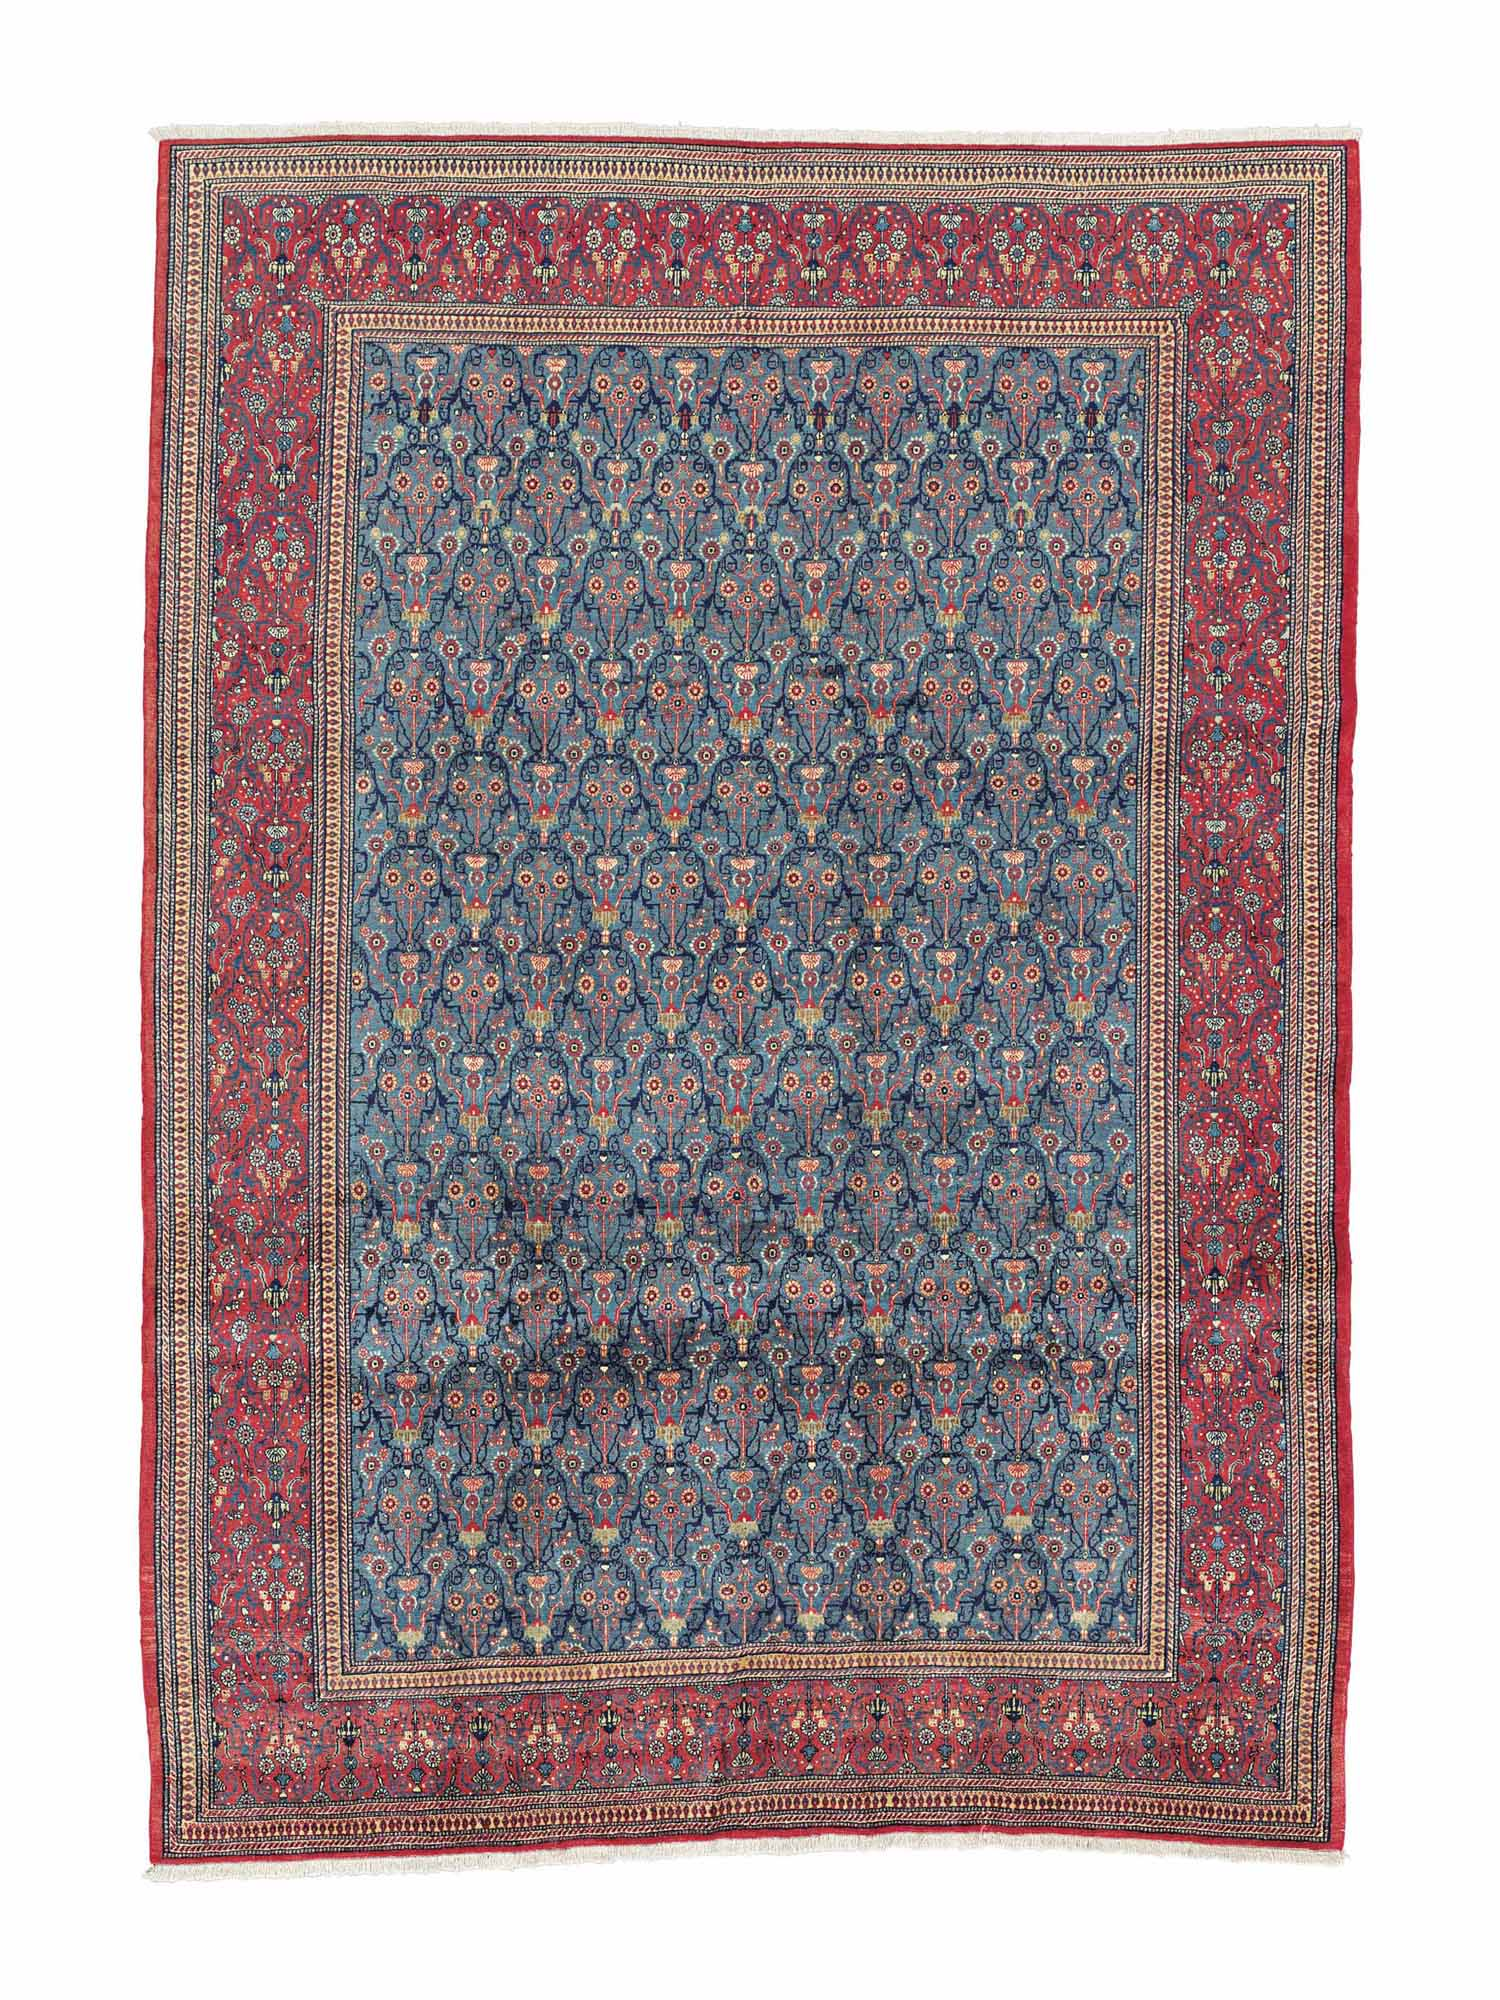 A FINE TEHERAN CARPET, NORTH P